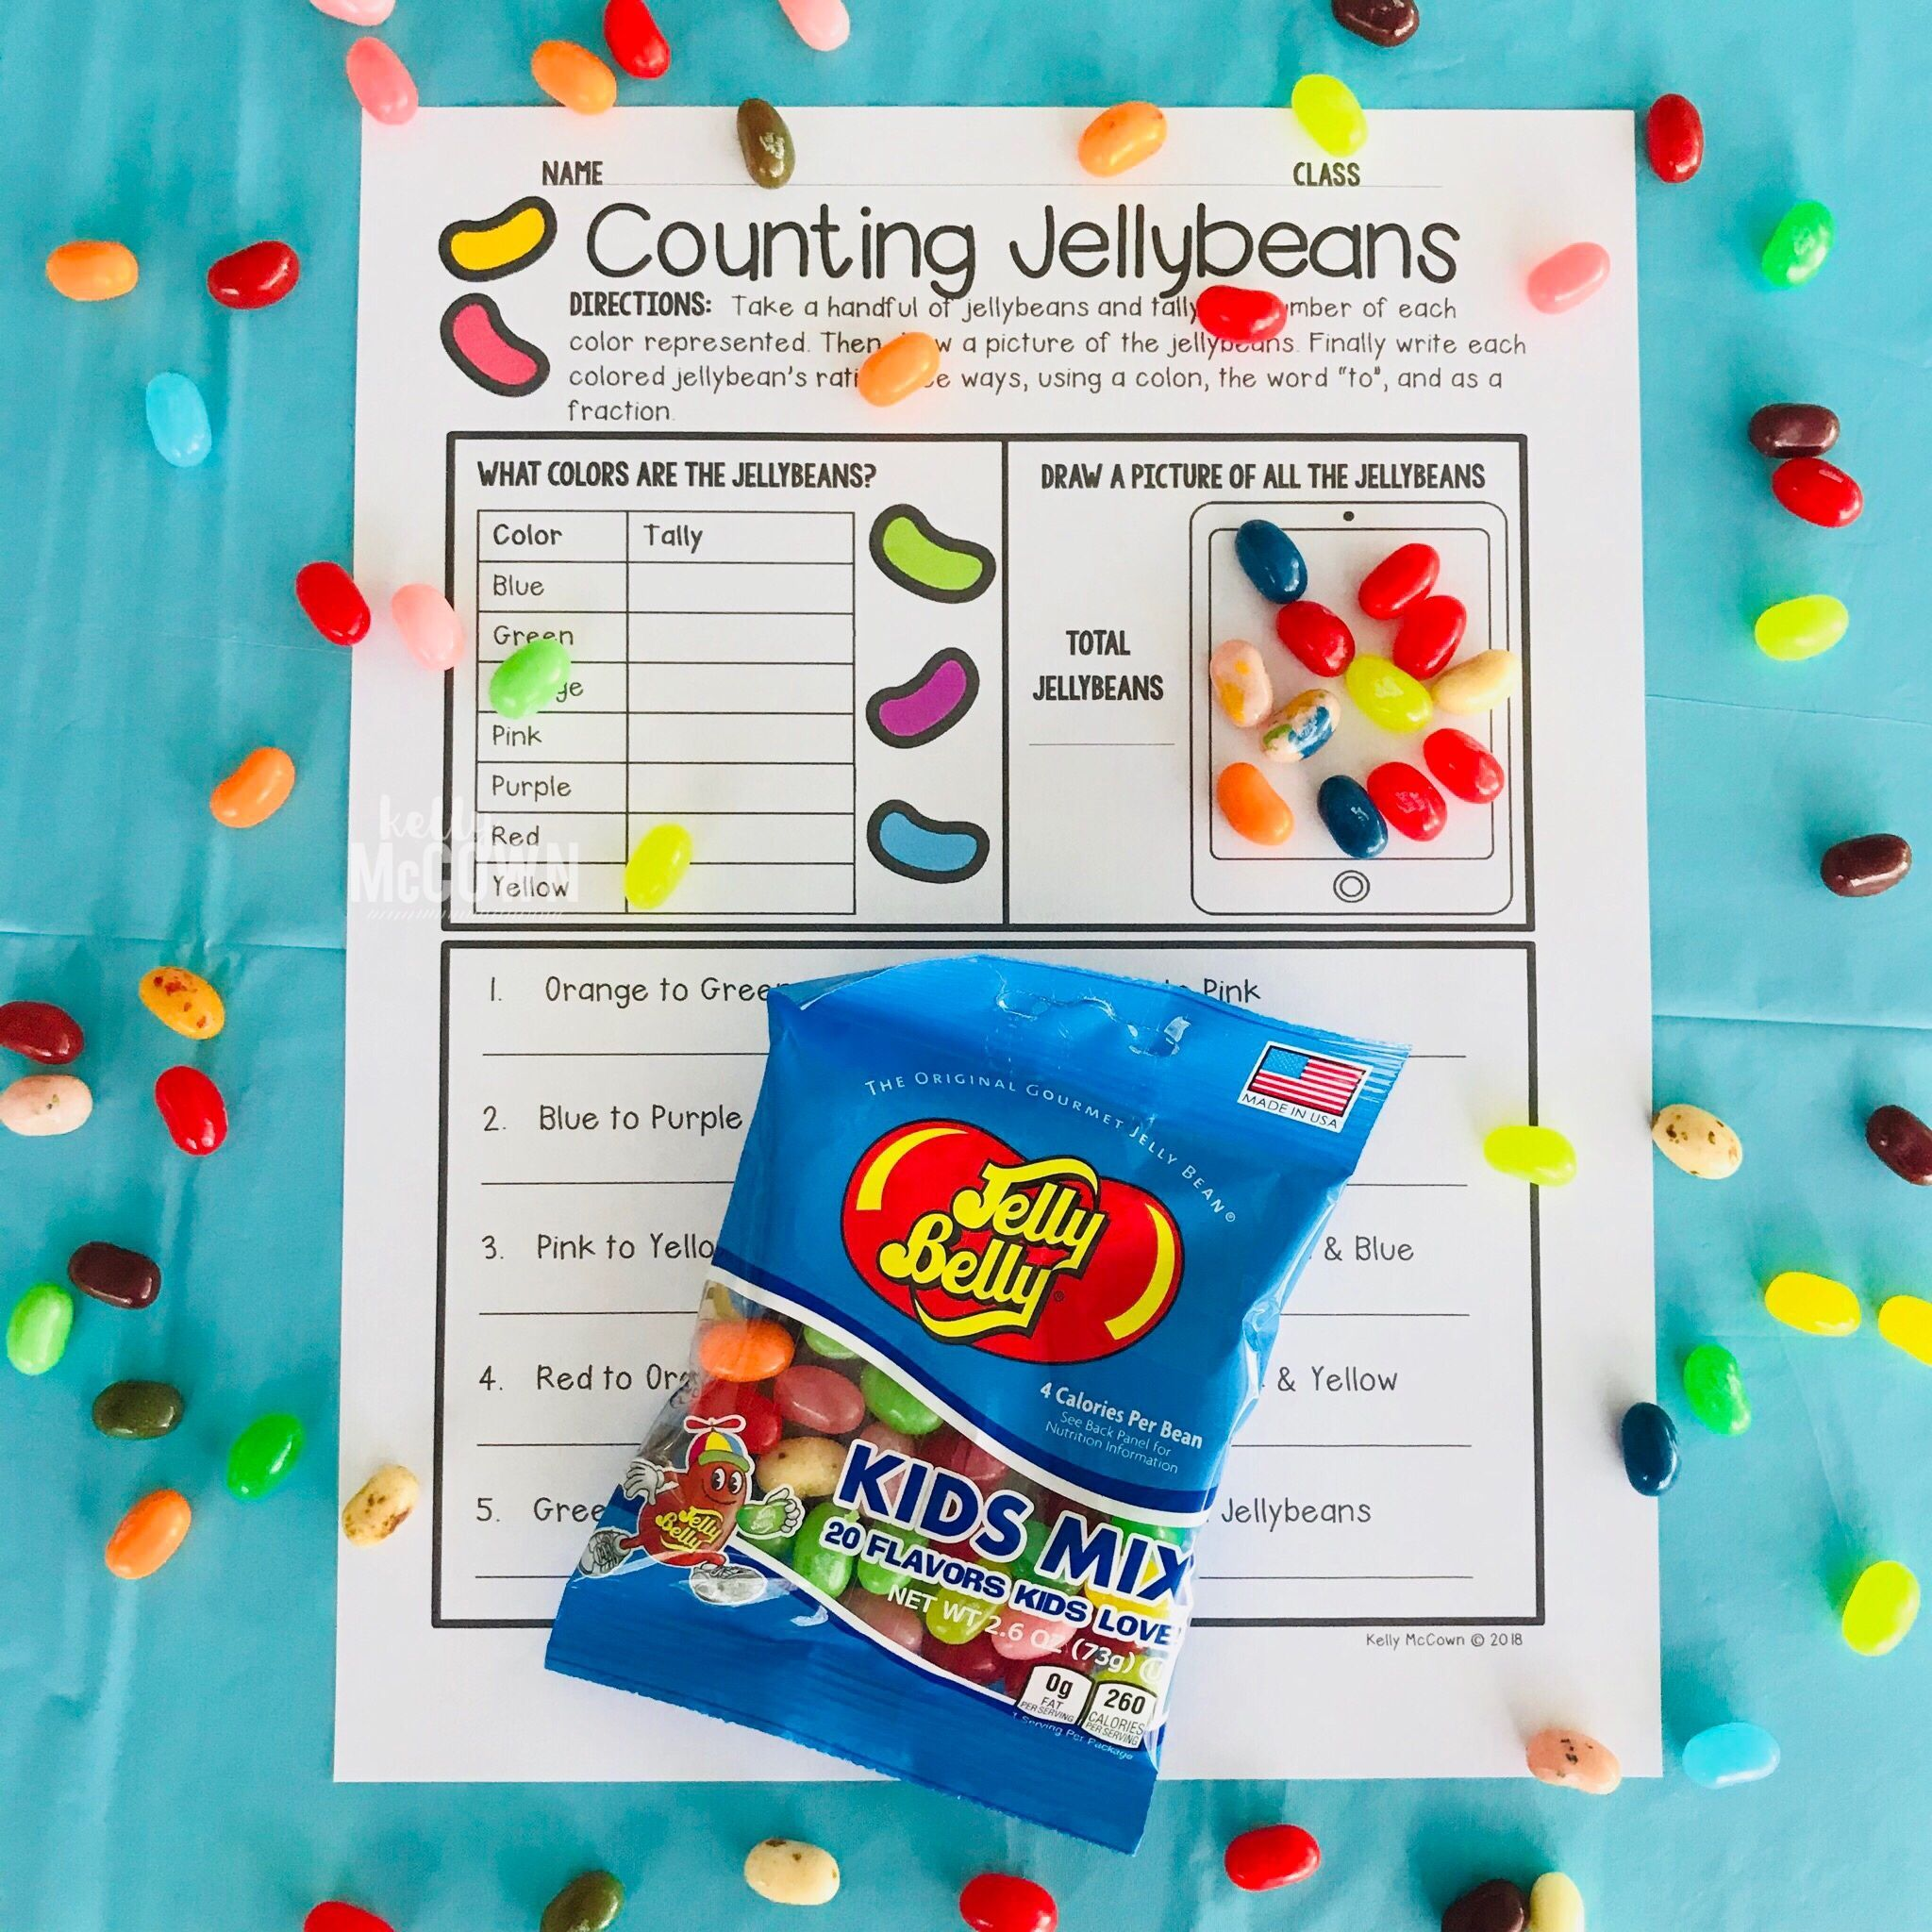 Spring Ratios And Rates Activity With Jellybeans For